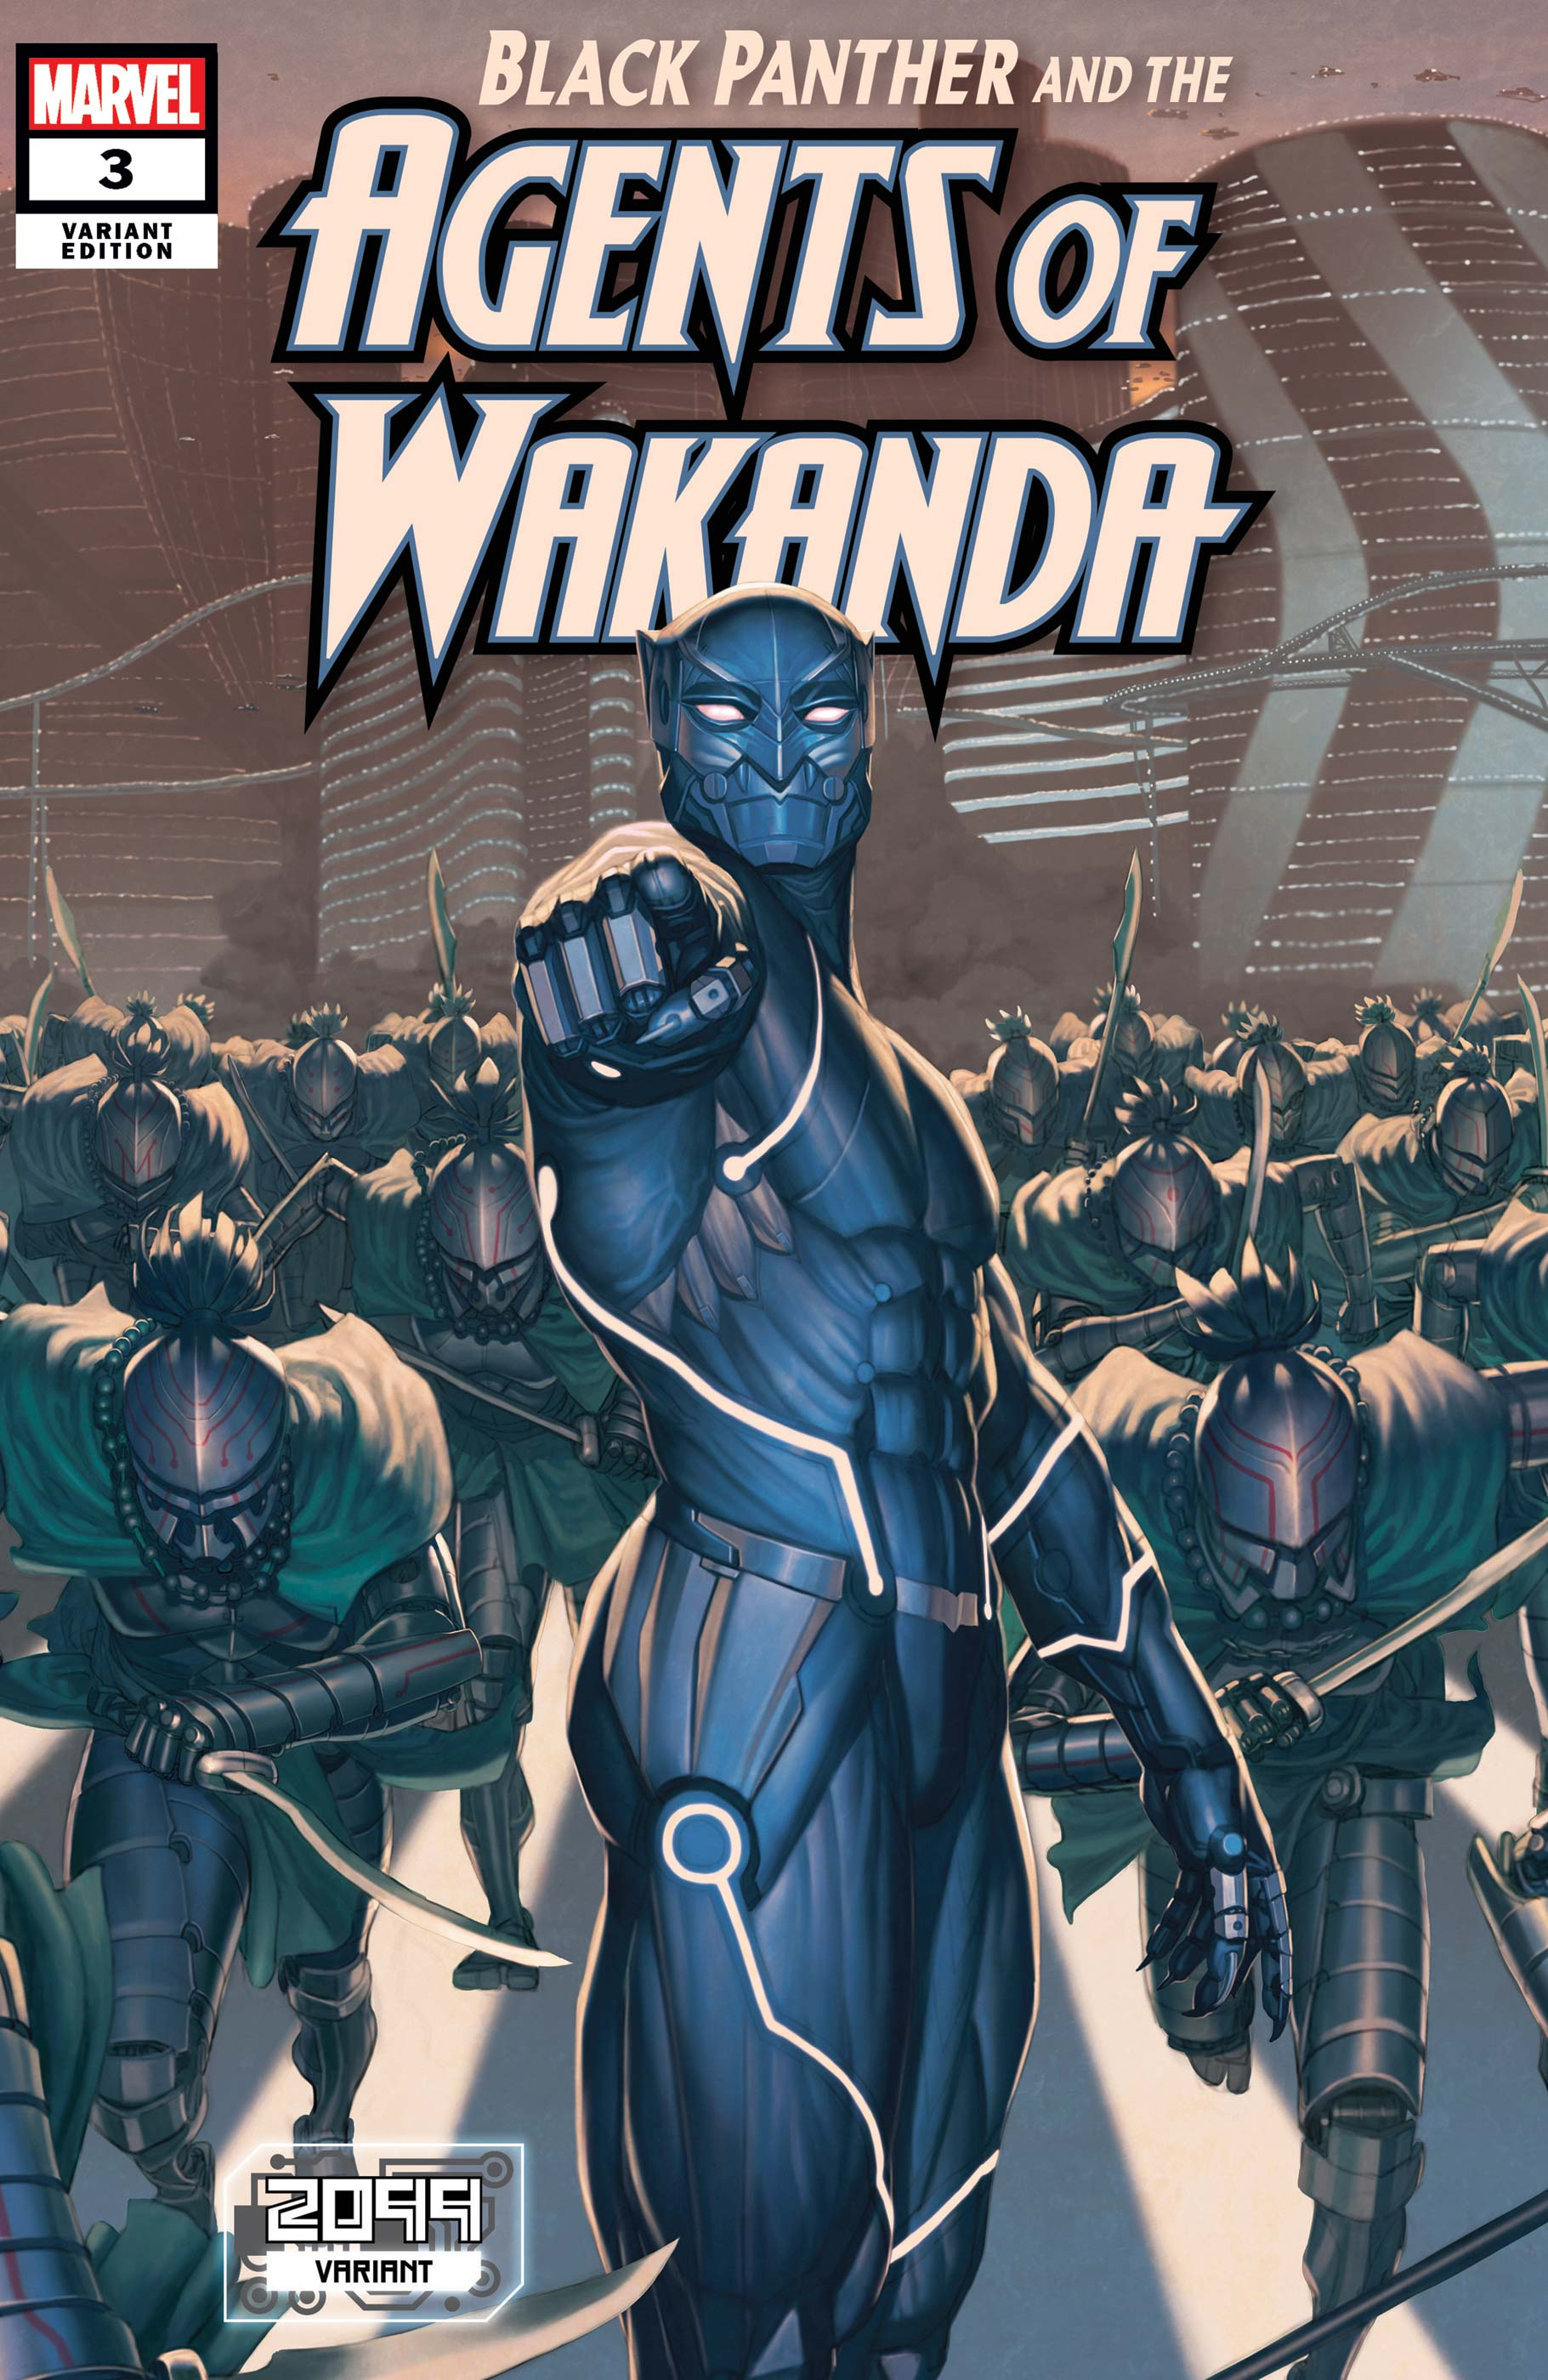 Black Panther and the Agents of Wakanda (2019) #3 (Variant)